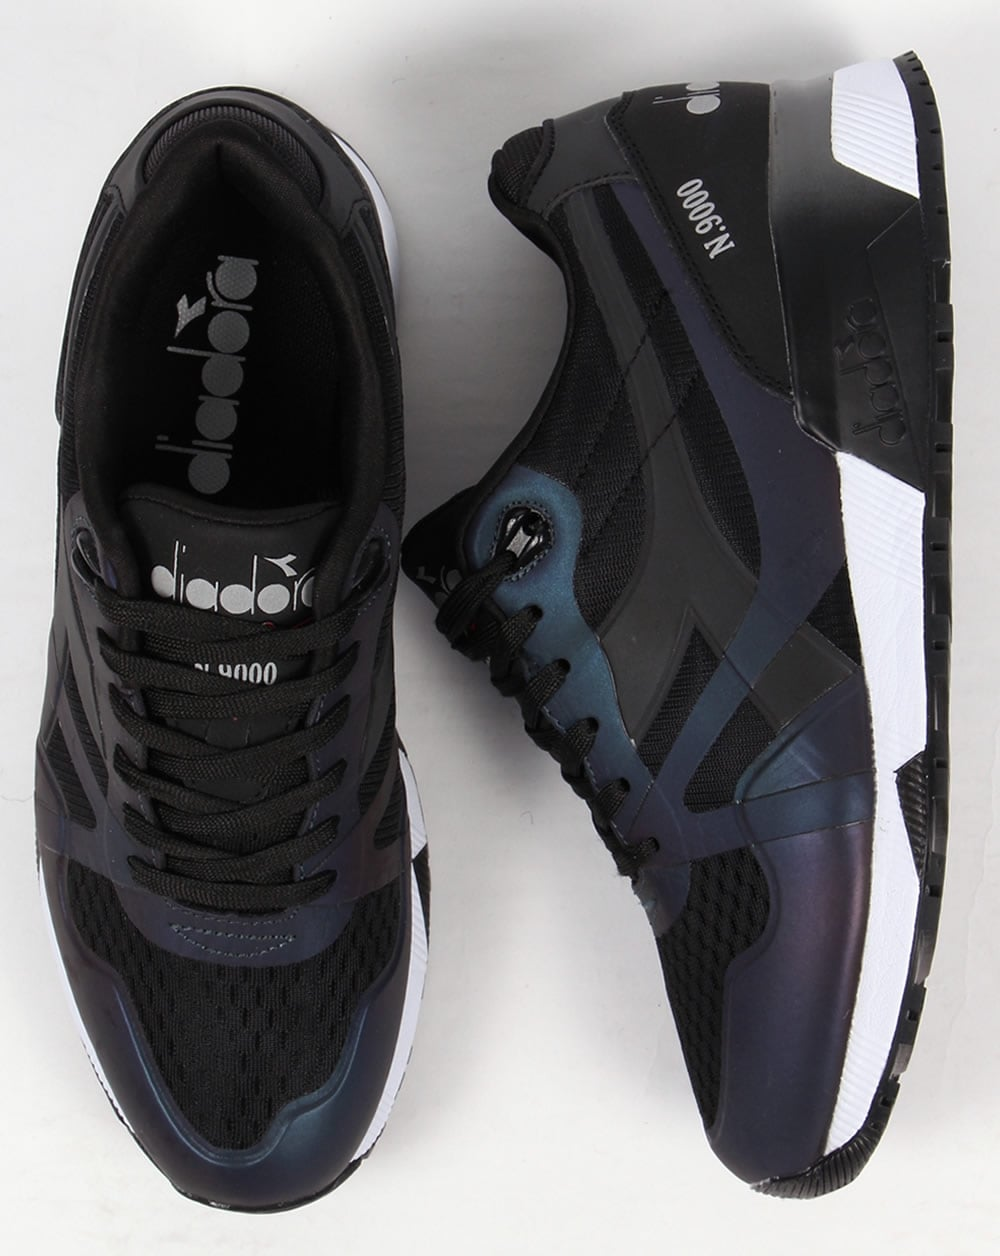 N9000 Hologram shoes sneakers Mm mens Trainers Diadora Black runners apfqdXw